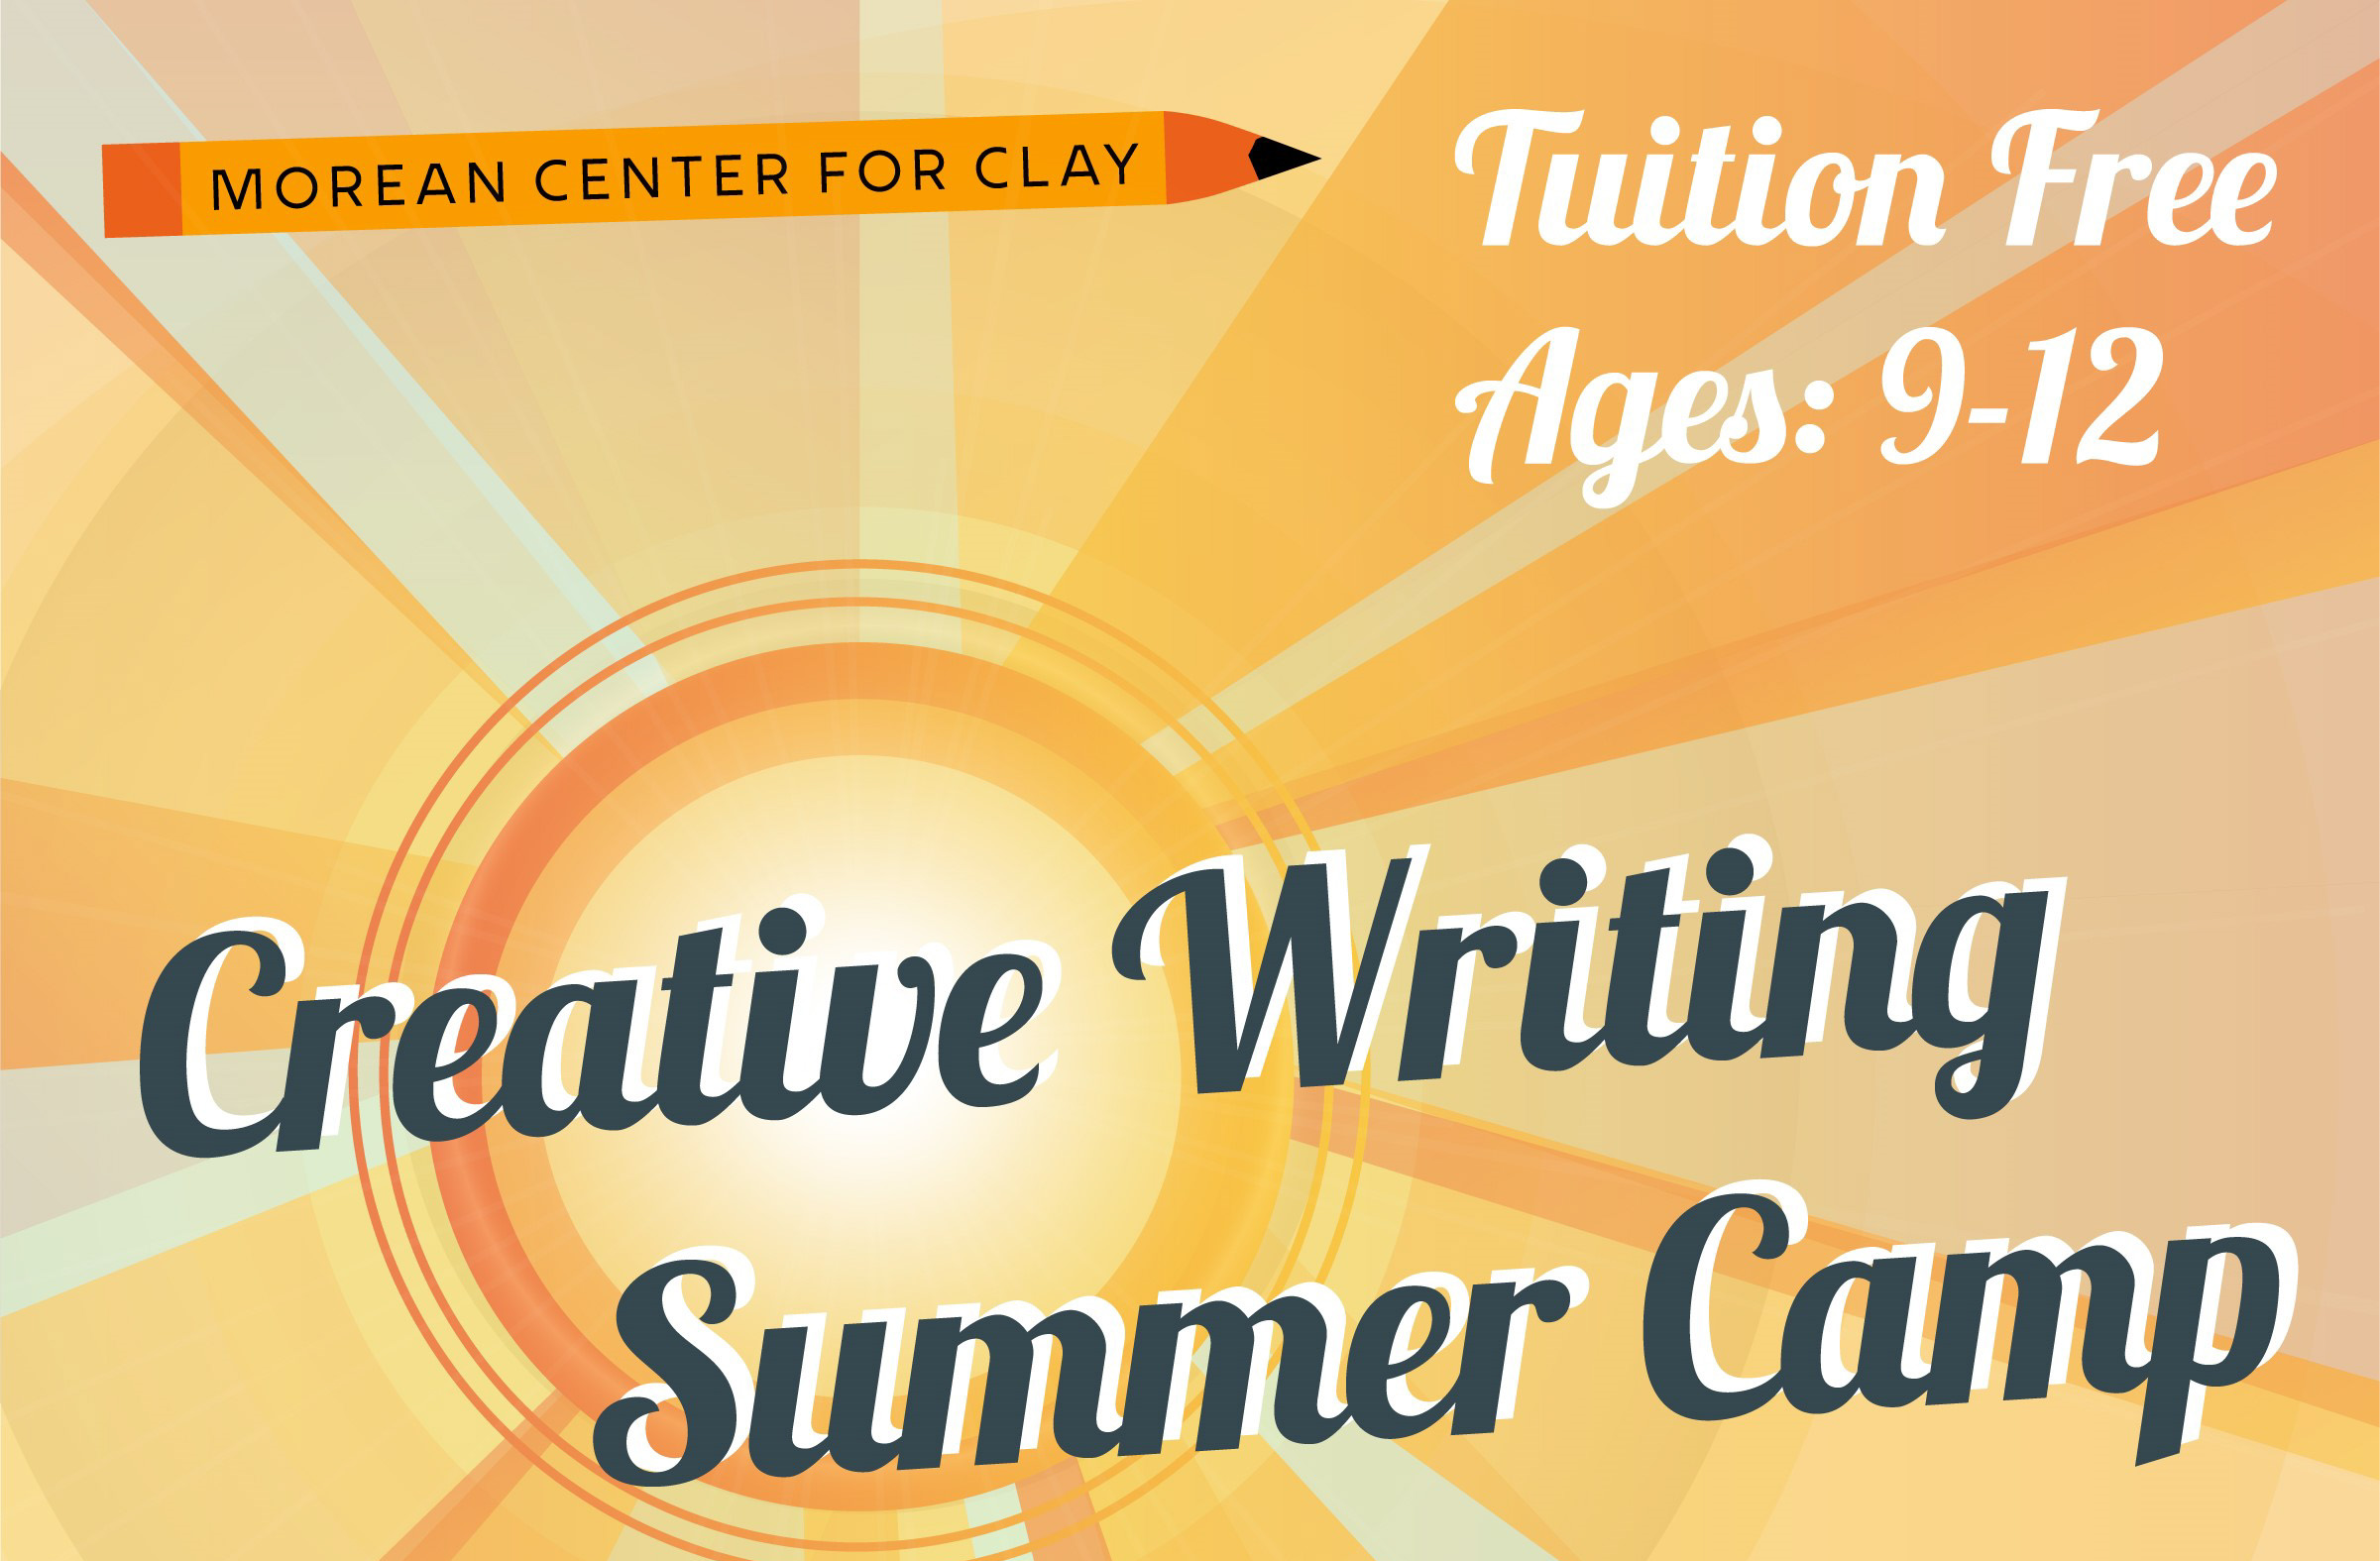 creative writing summer camp chicago Sleepaway camp chicago metro trimester-long holiday & summer half-day private sessions  creative writing workshops teen writing seminar enroll now  brooklyn new york metro north new jersey dc metro los angeles metro chicago sf bay area holiday & summer full-day camps manhattan brooklyn new york metro north dc metro los angeles metro.